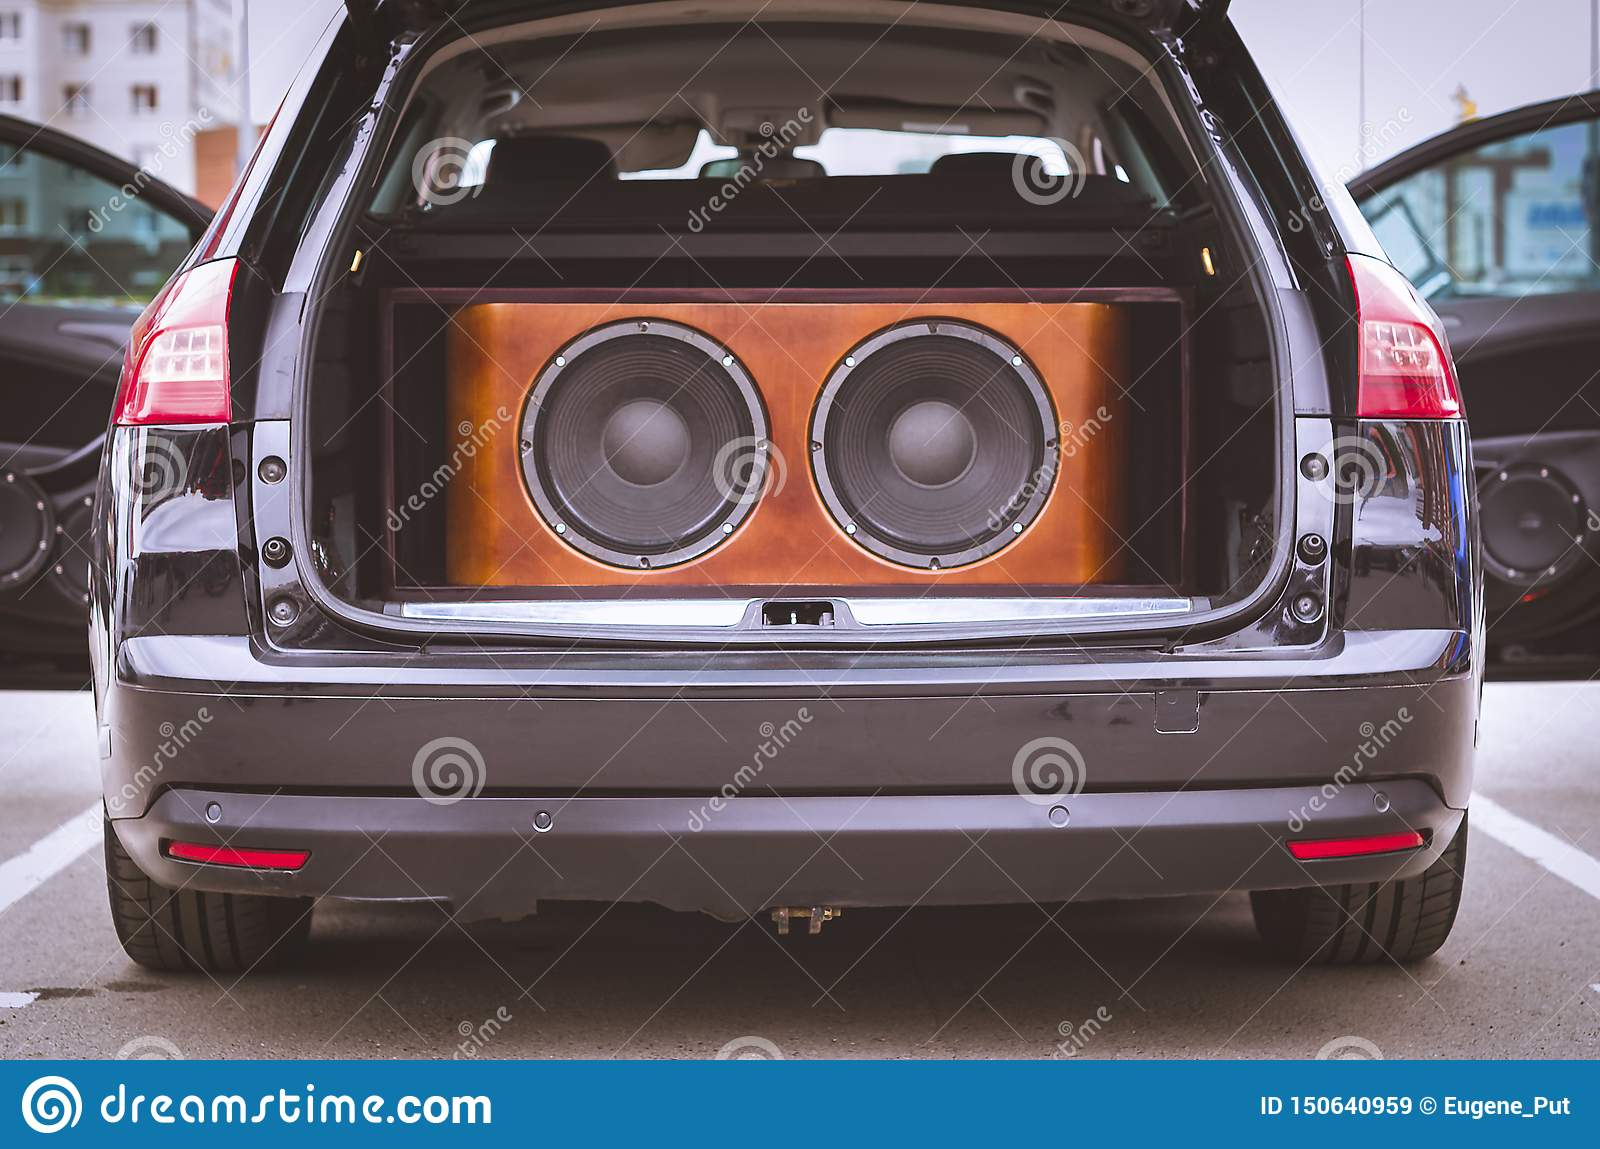 7 070 Car Audio Photos Free Royalty Free Stock Photos From Dreamstime